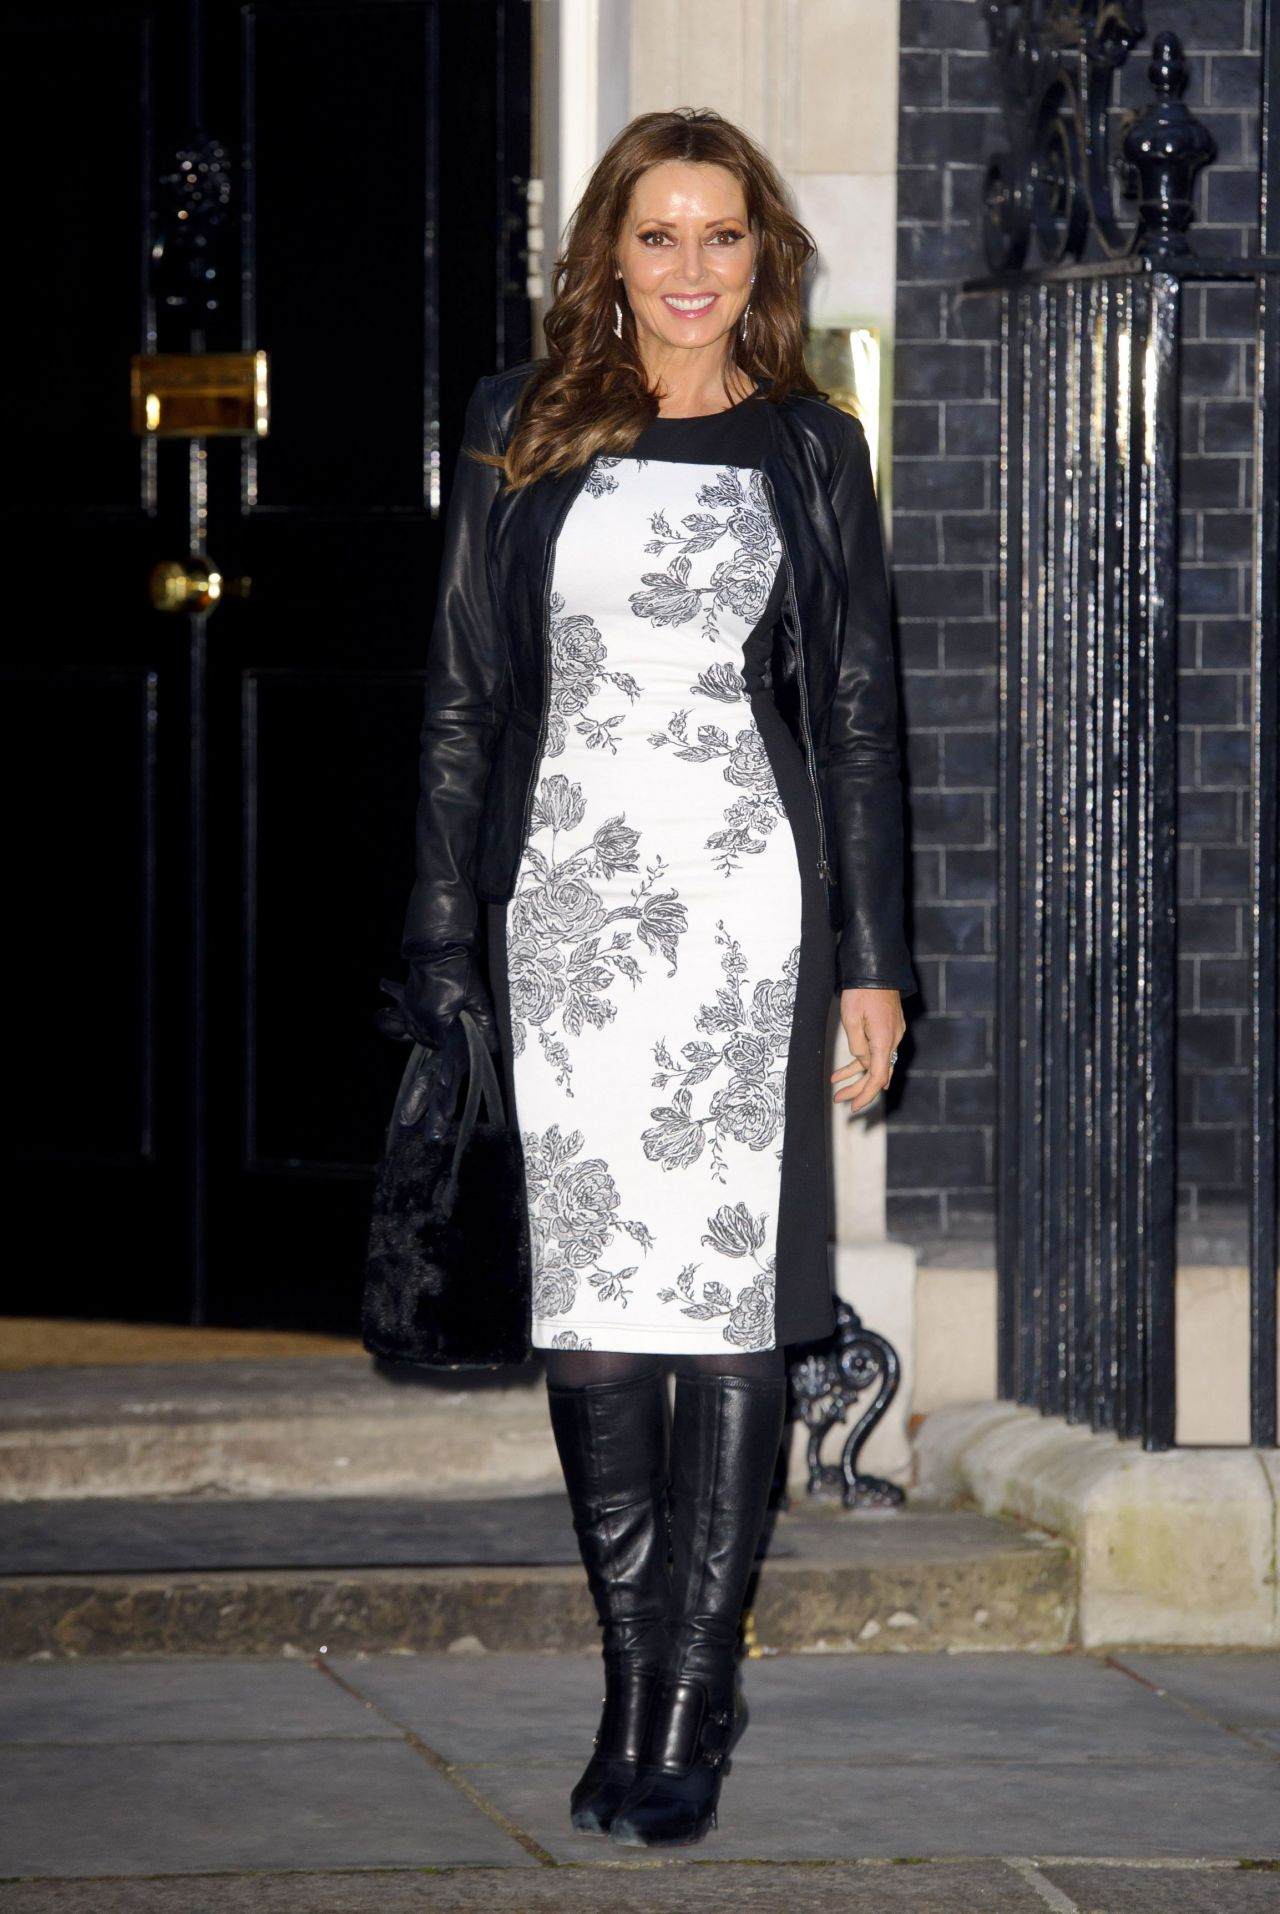 Carol Vorderman Downing Street London March 2014